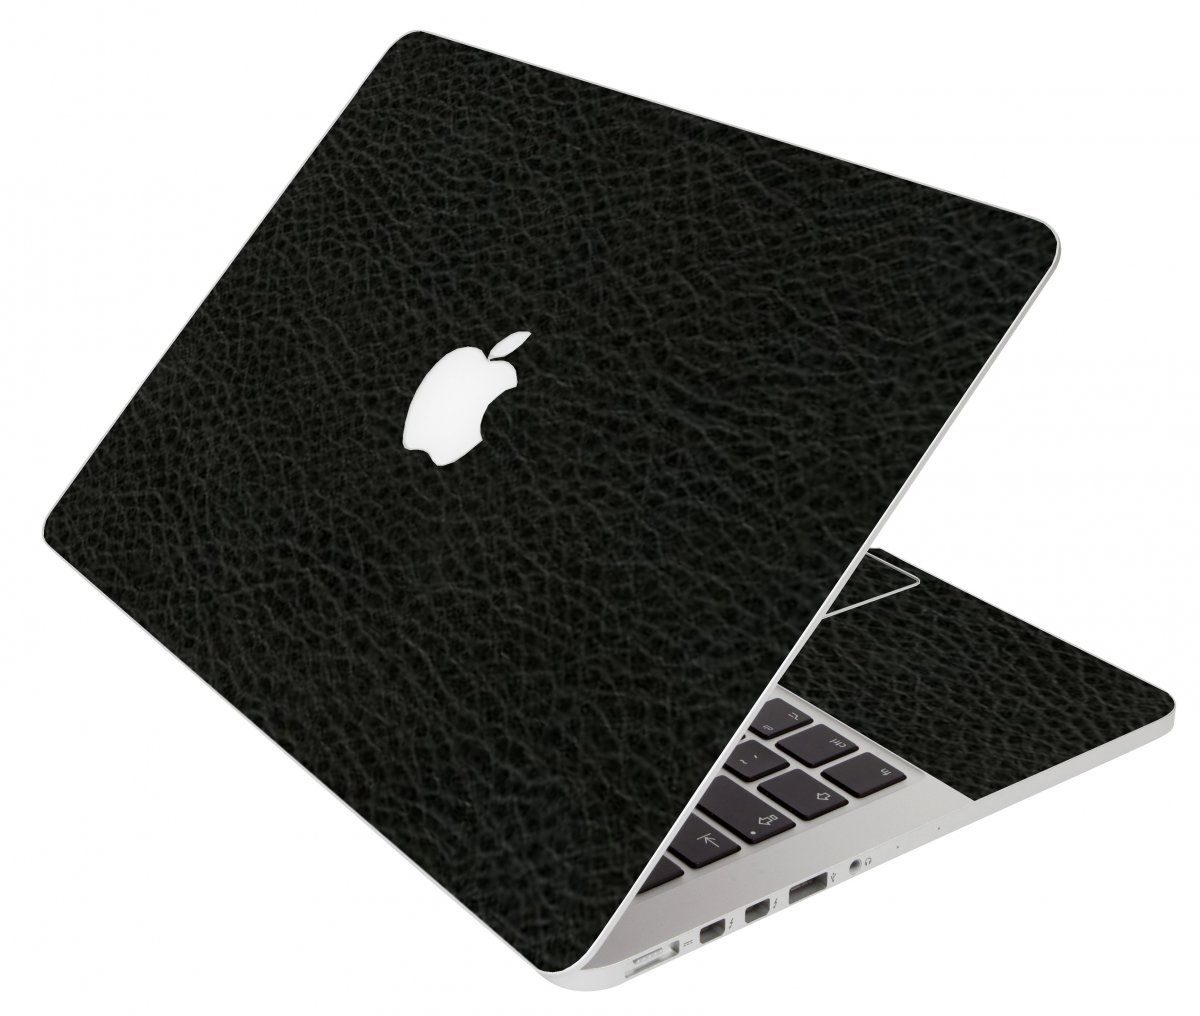 Black Leather Apple Macbook Air 11 A1370 Laptop Skin